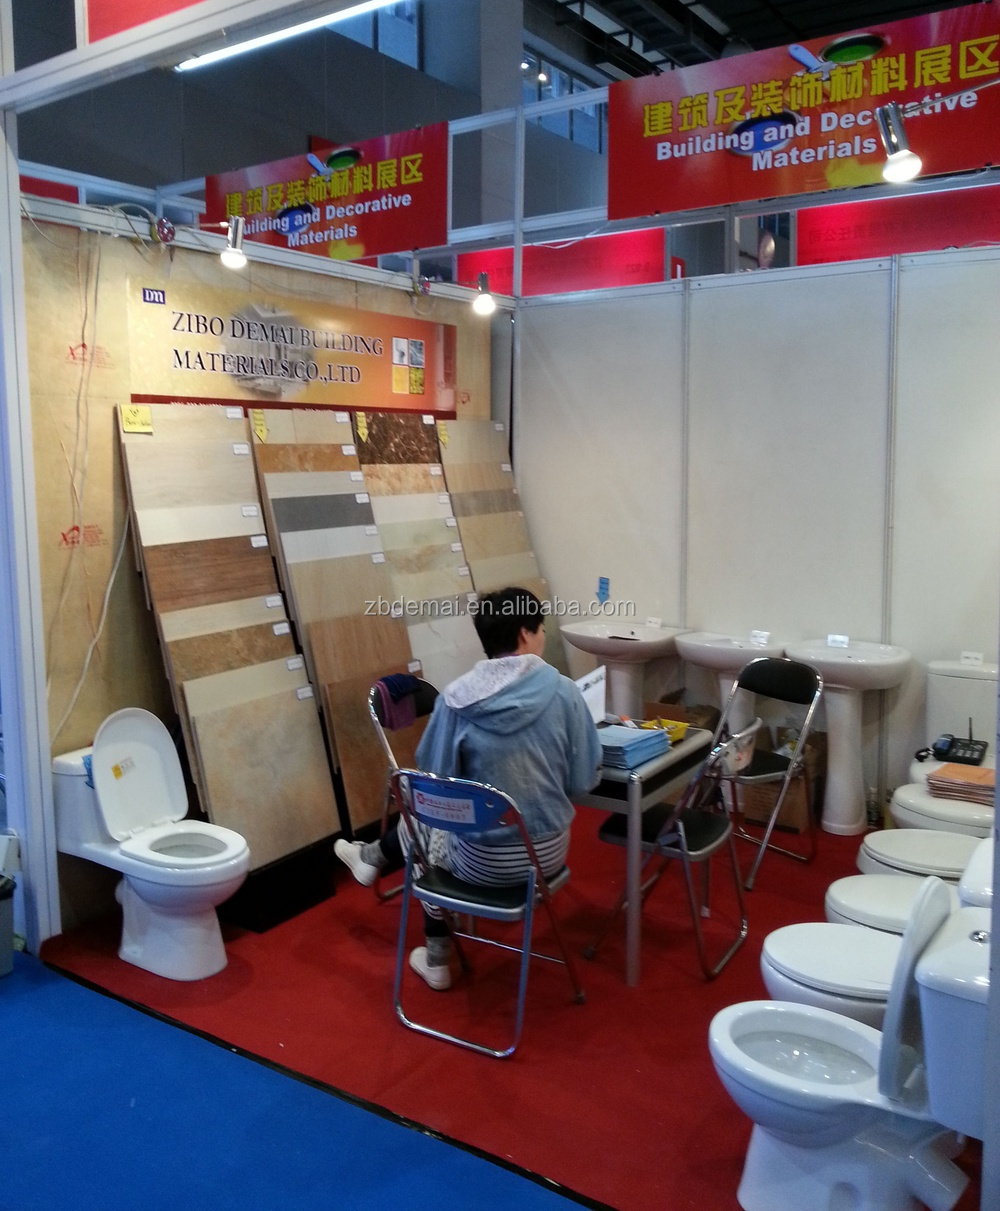 Dpl-113 Sanitary Ware Wholesalers China Suppliers Bathrooms ...